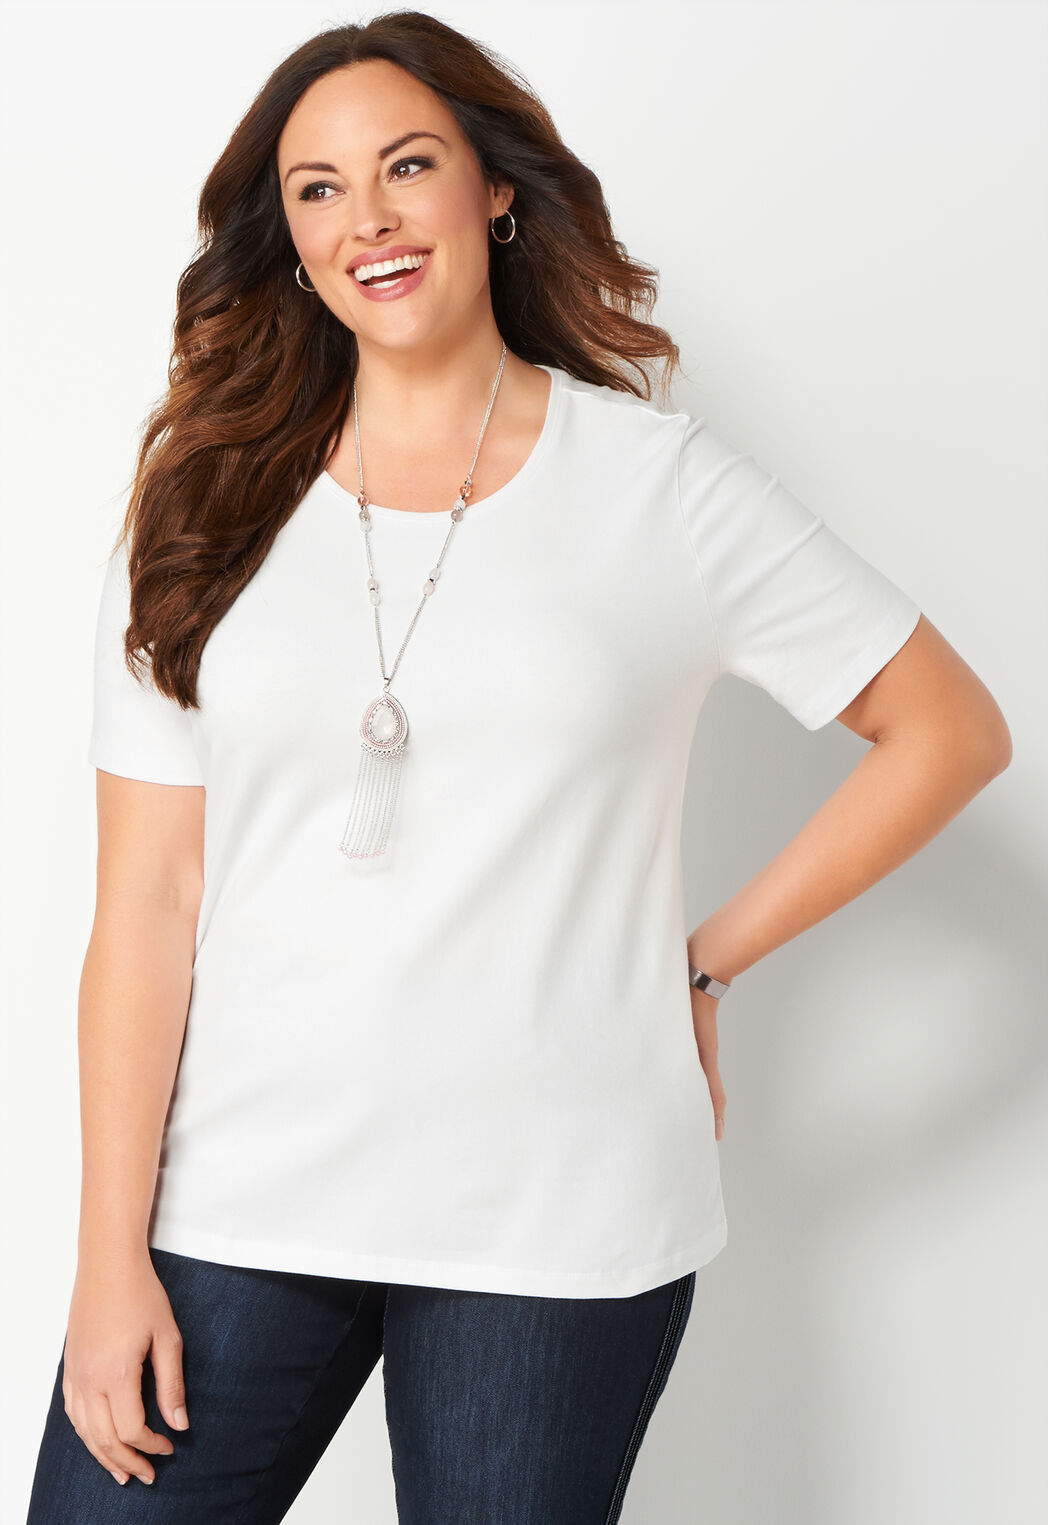 Women\'s Jewel Nk Tee from CJ Banks®